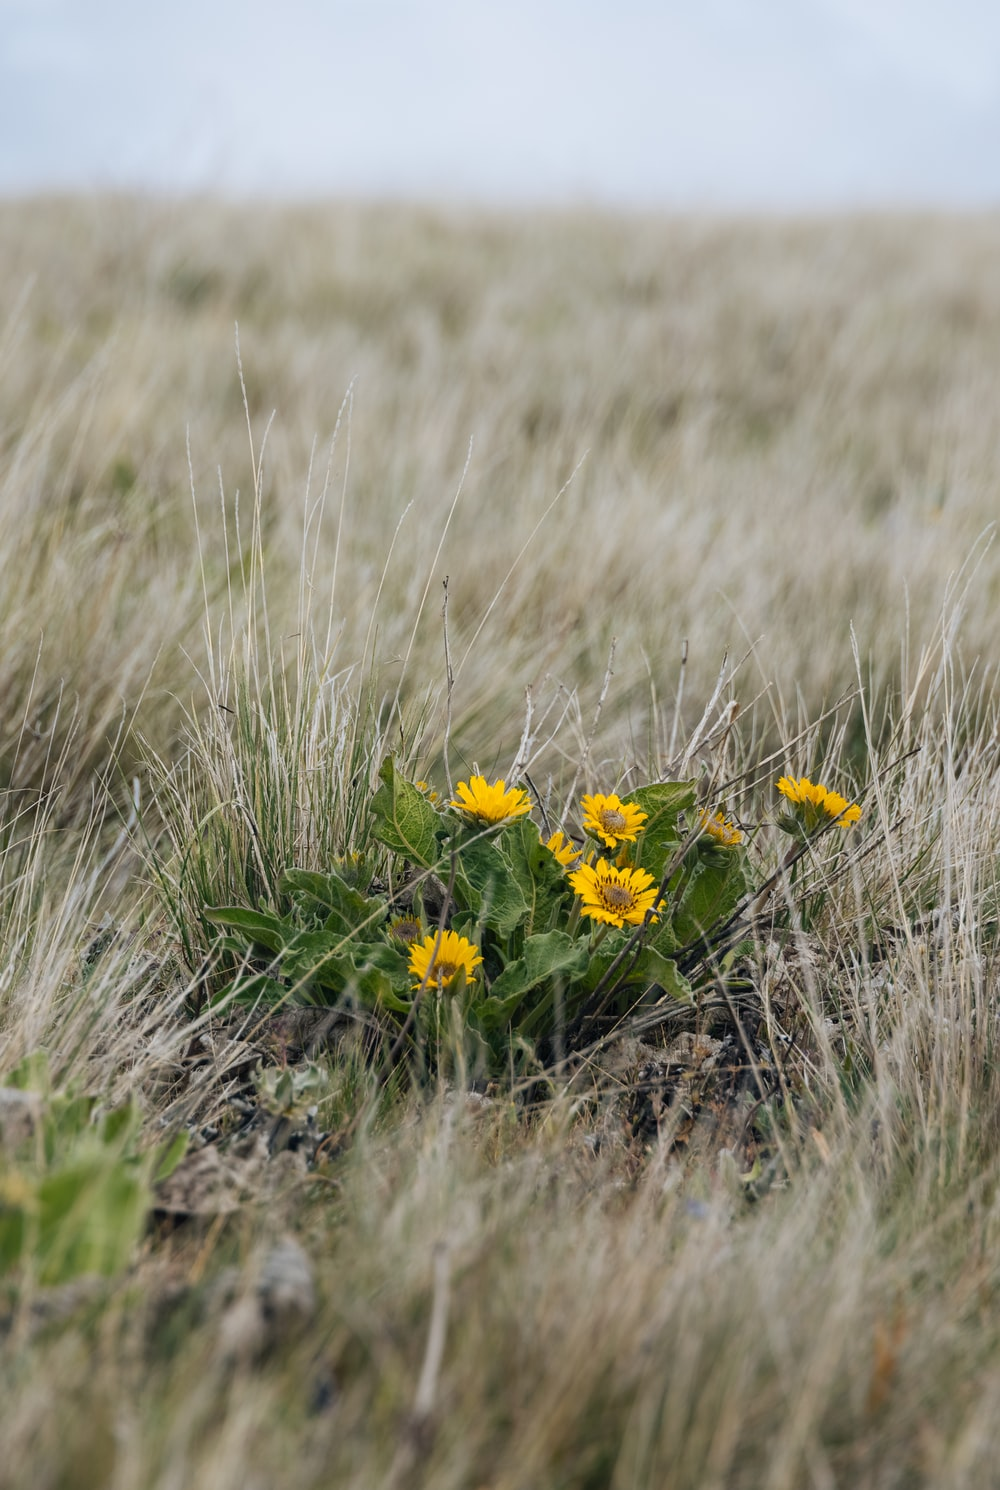 yellow and black flowers on brown grass field